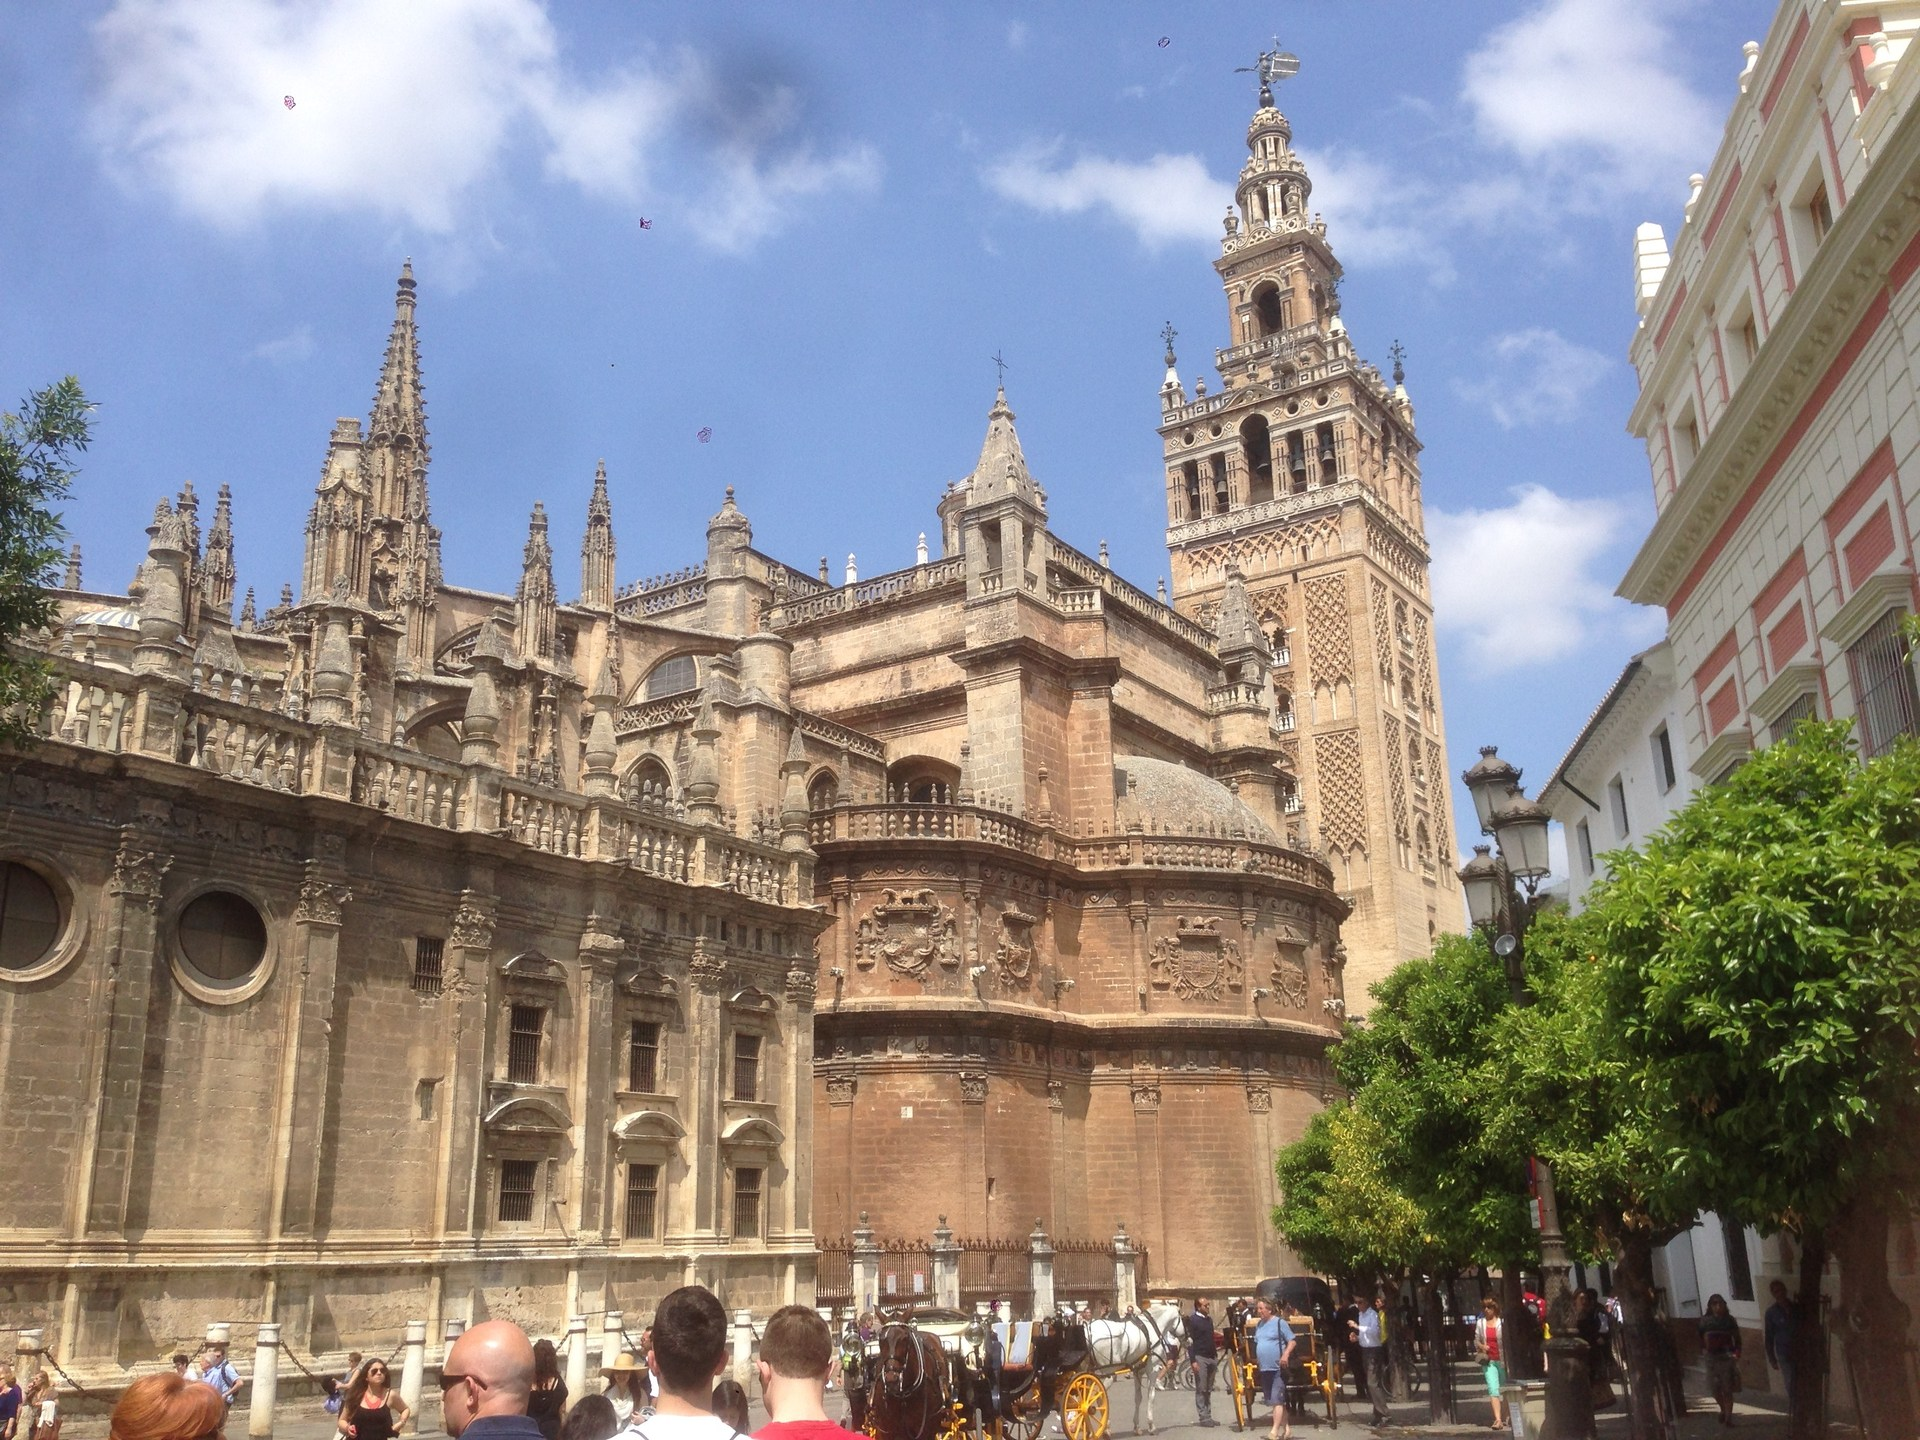 A beautiful cathedral in Sevile, Spain